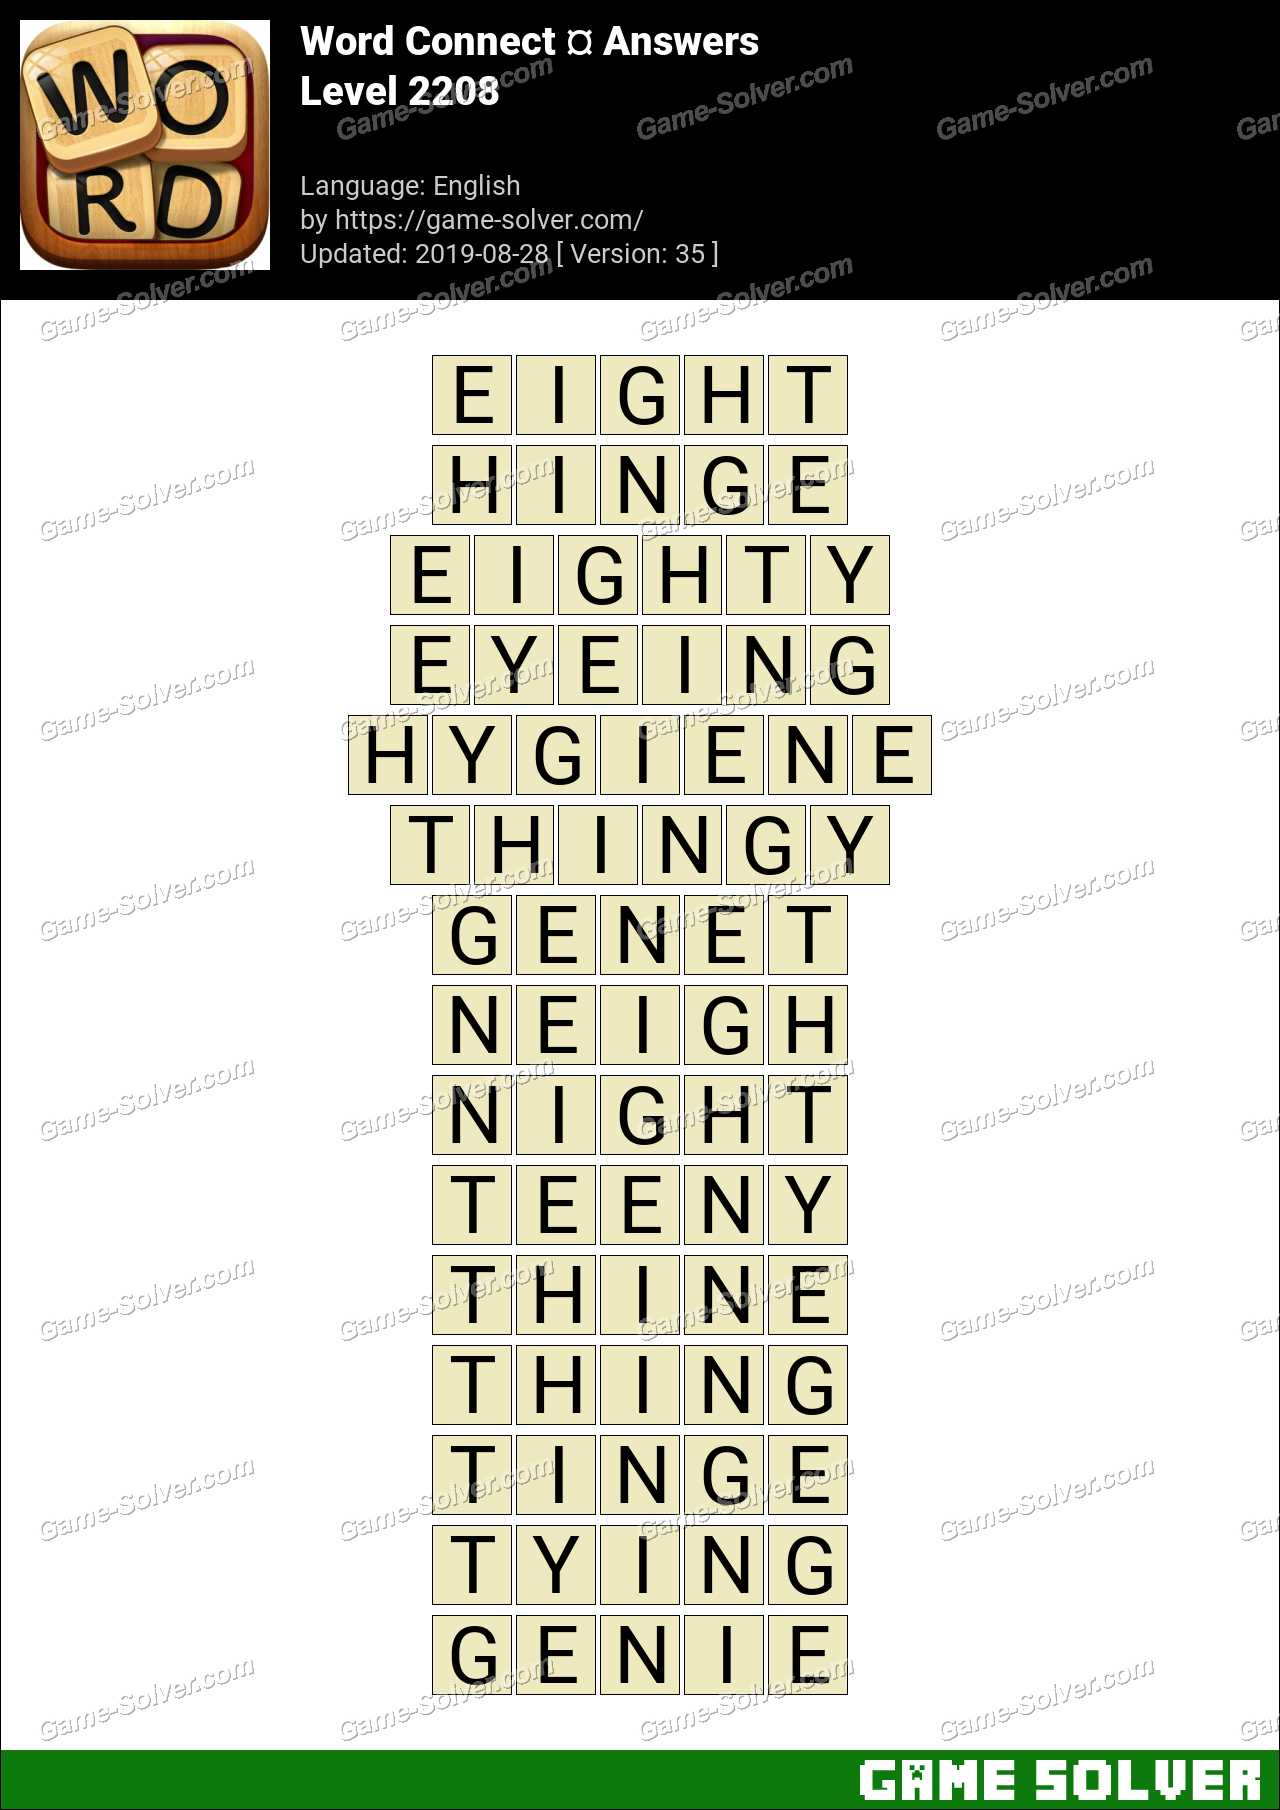 Word Connect Level 2208 Answers